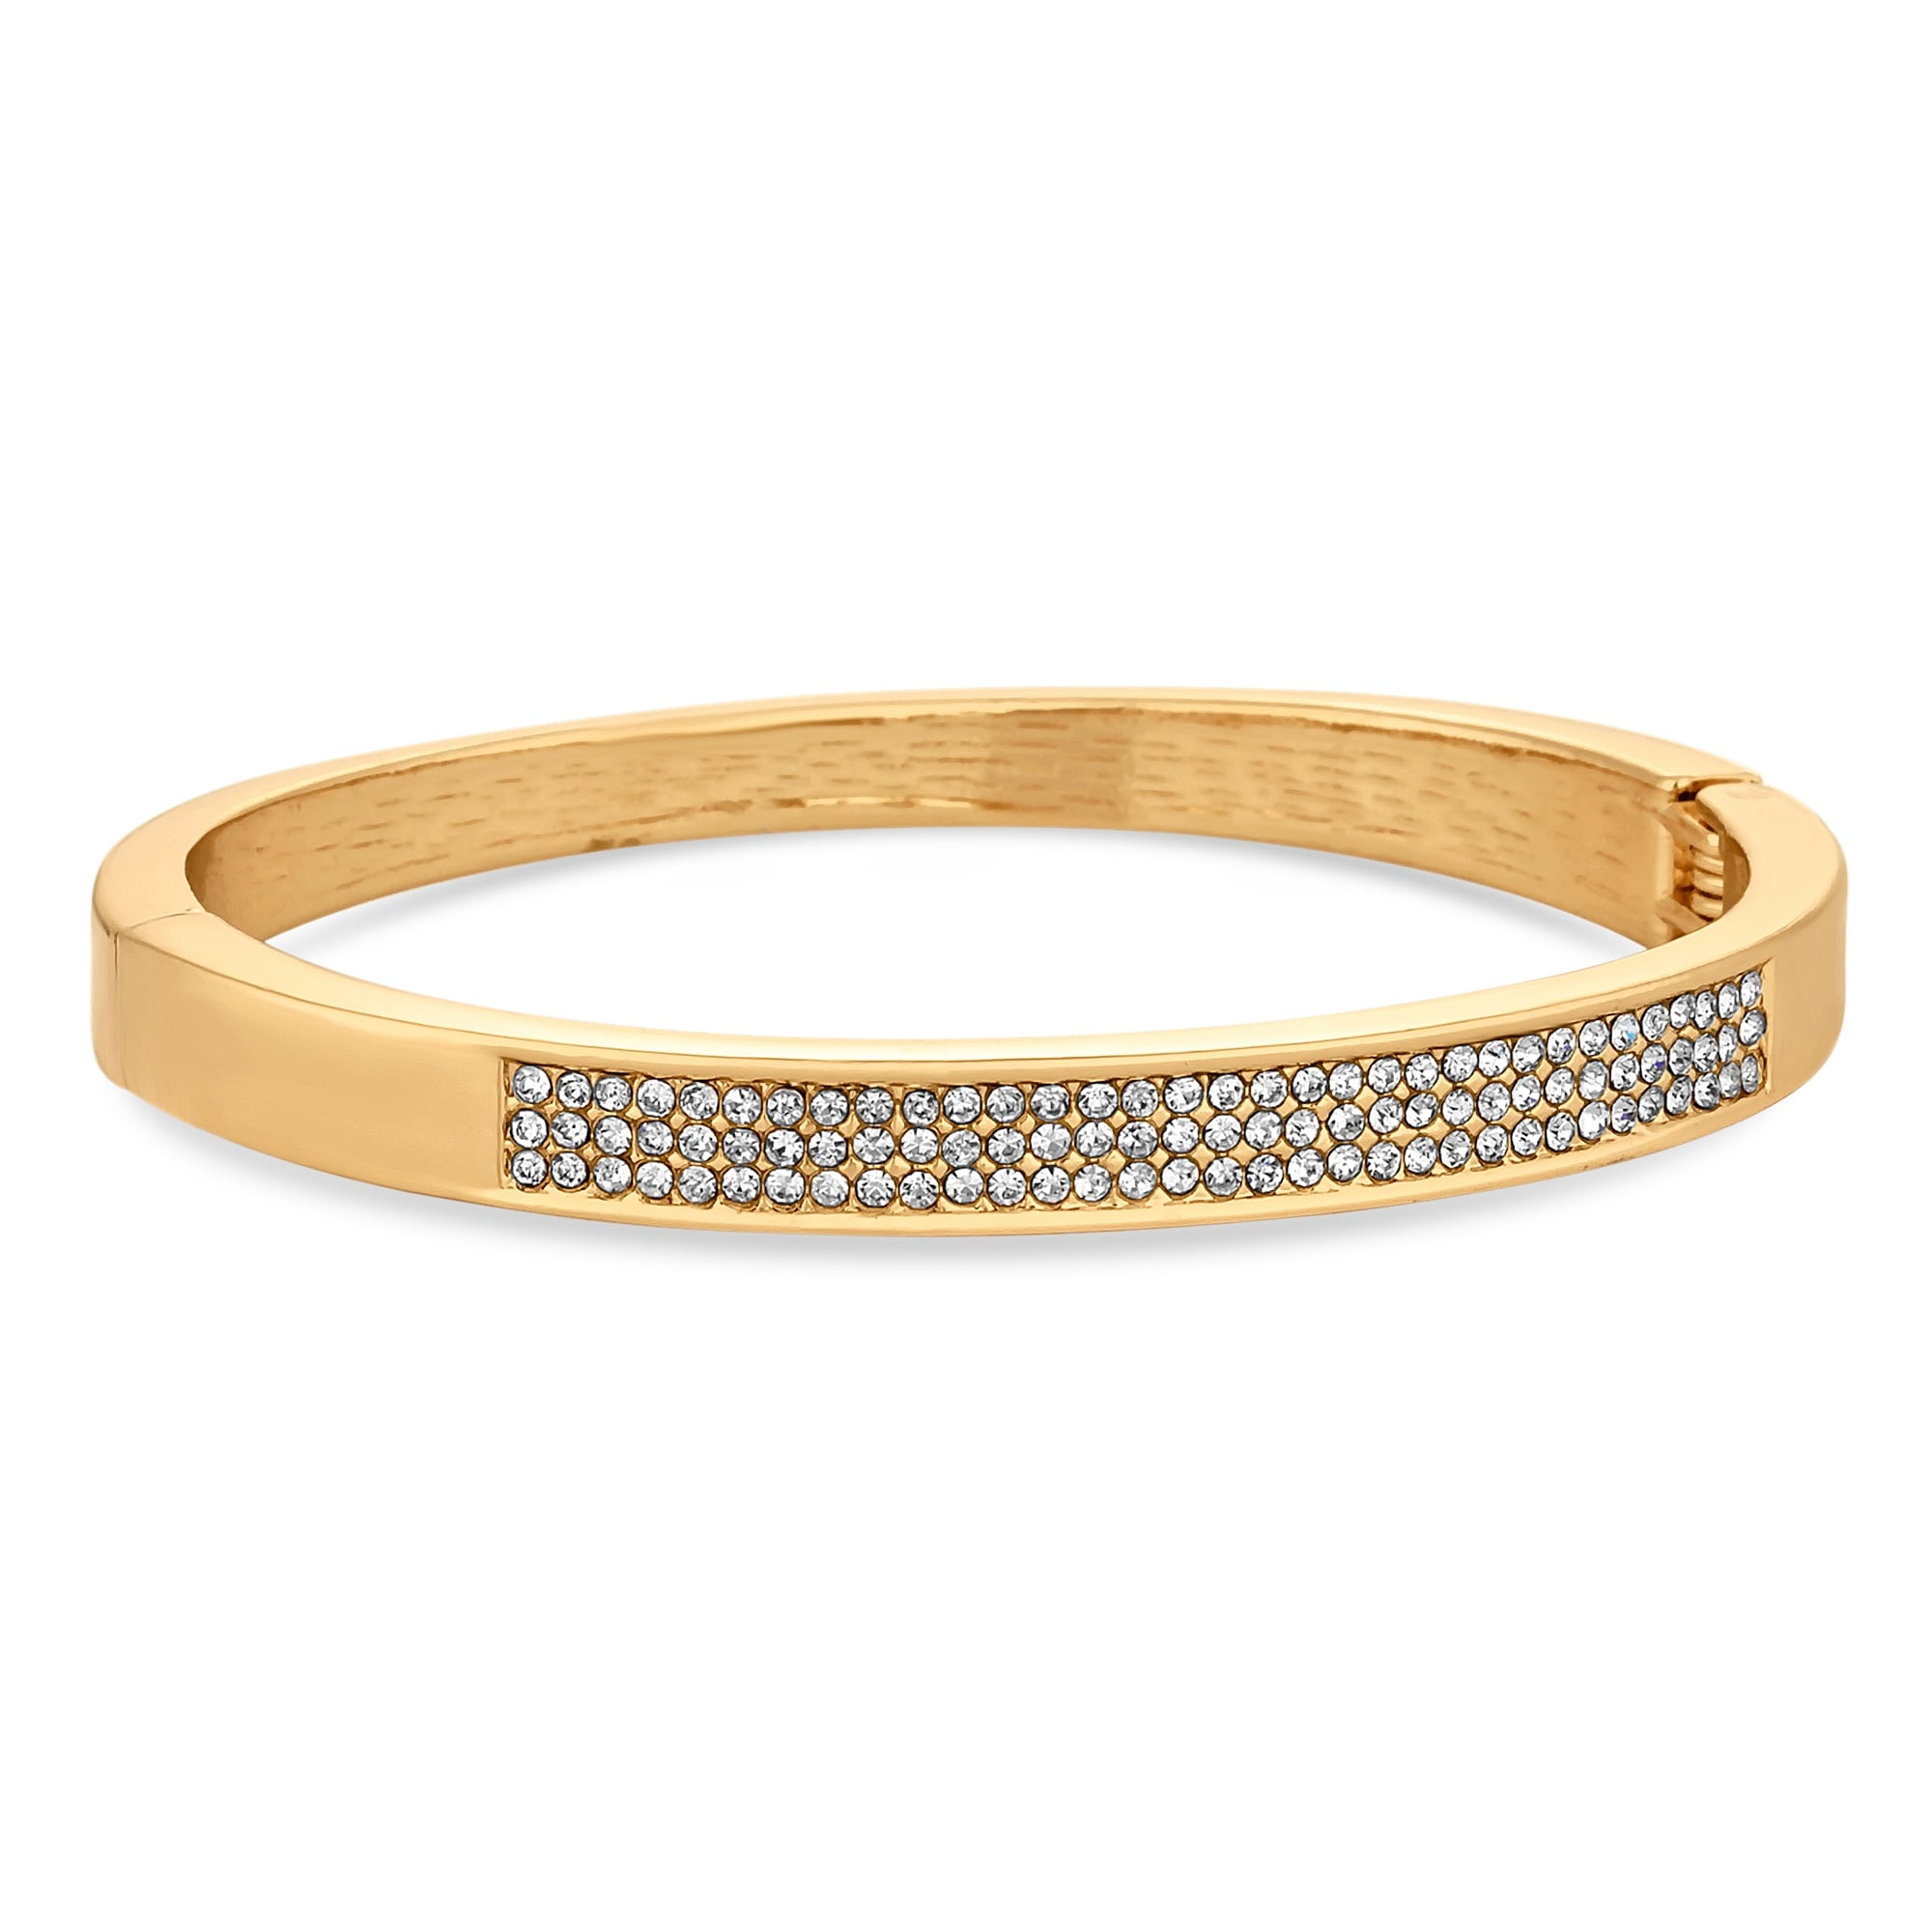 j id org for bangles pave bracelets bangle rounded at bracelet jewelry diamond square sale